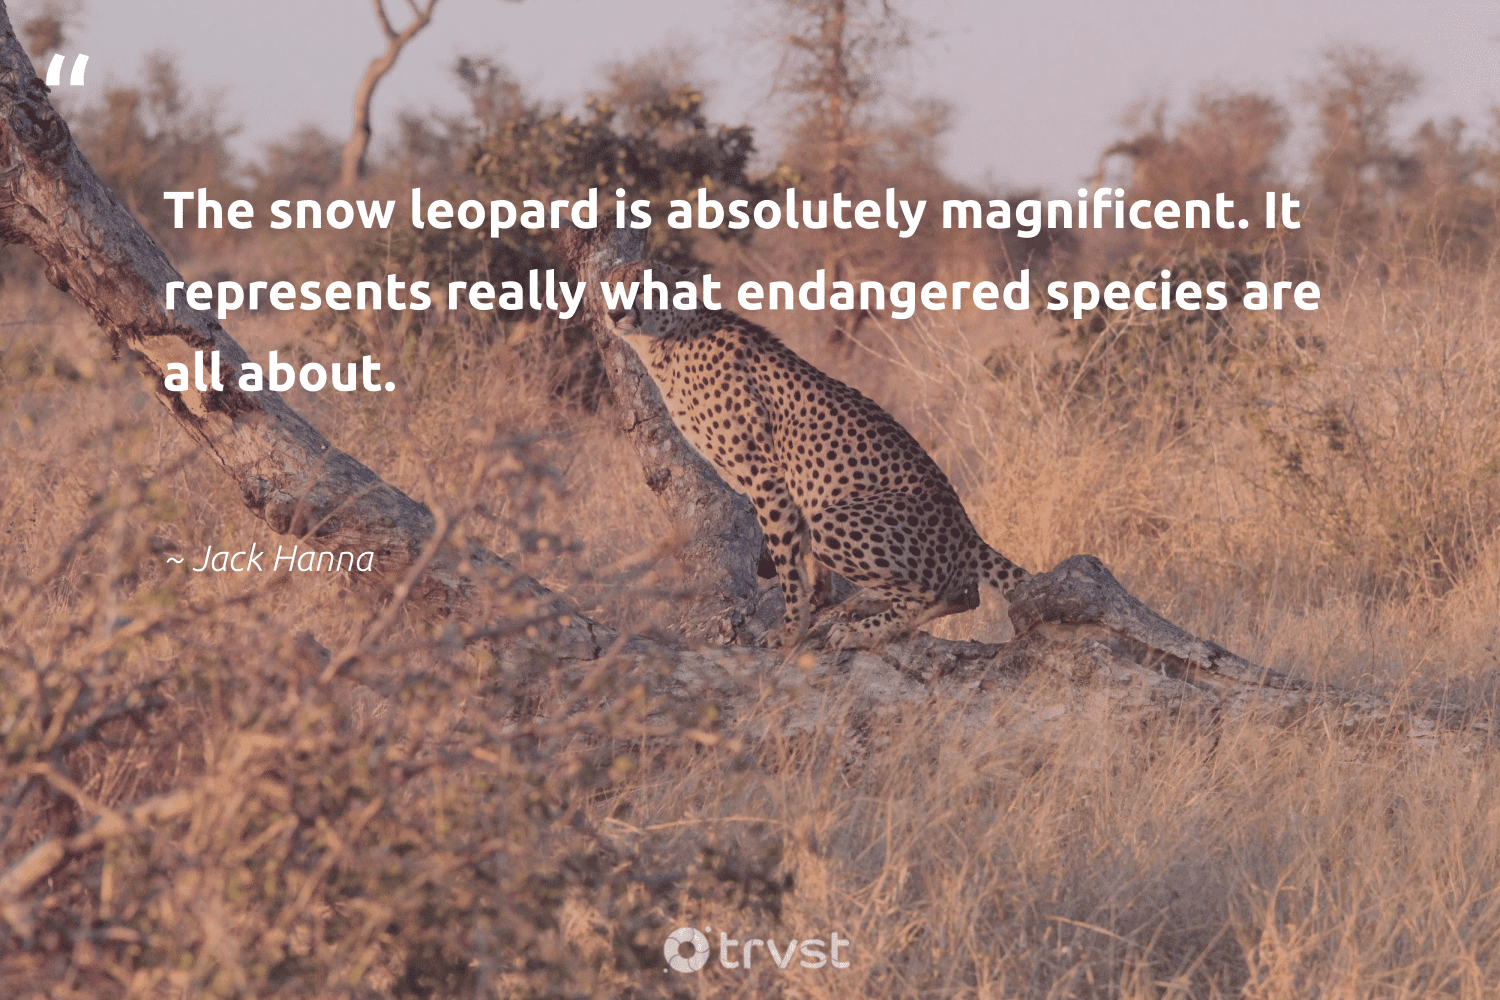 """""""The snow leopard is absolutely magnificent. It represents really what endangered species are all about.""""  - Jack Hanna #trvst #quotes #snow #endangeredspecies #endangered #leopard #endemic #flooding #conservation #natural #bethechange #extinction"""